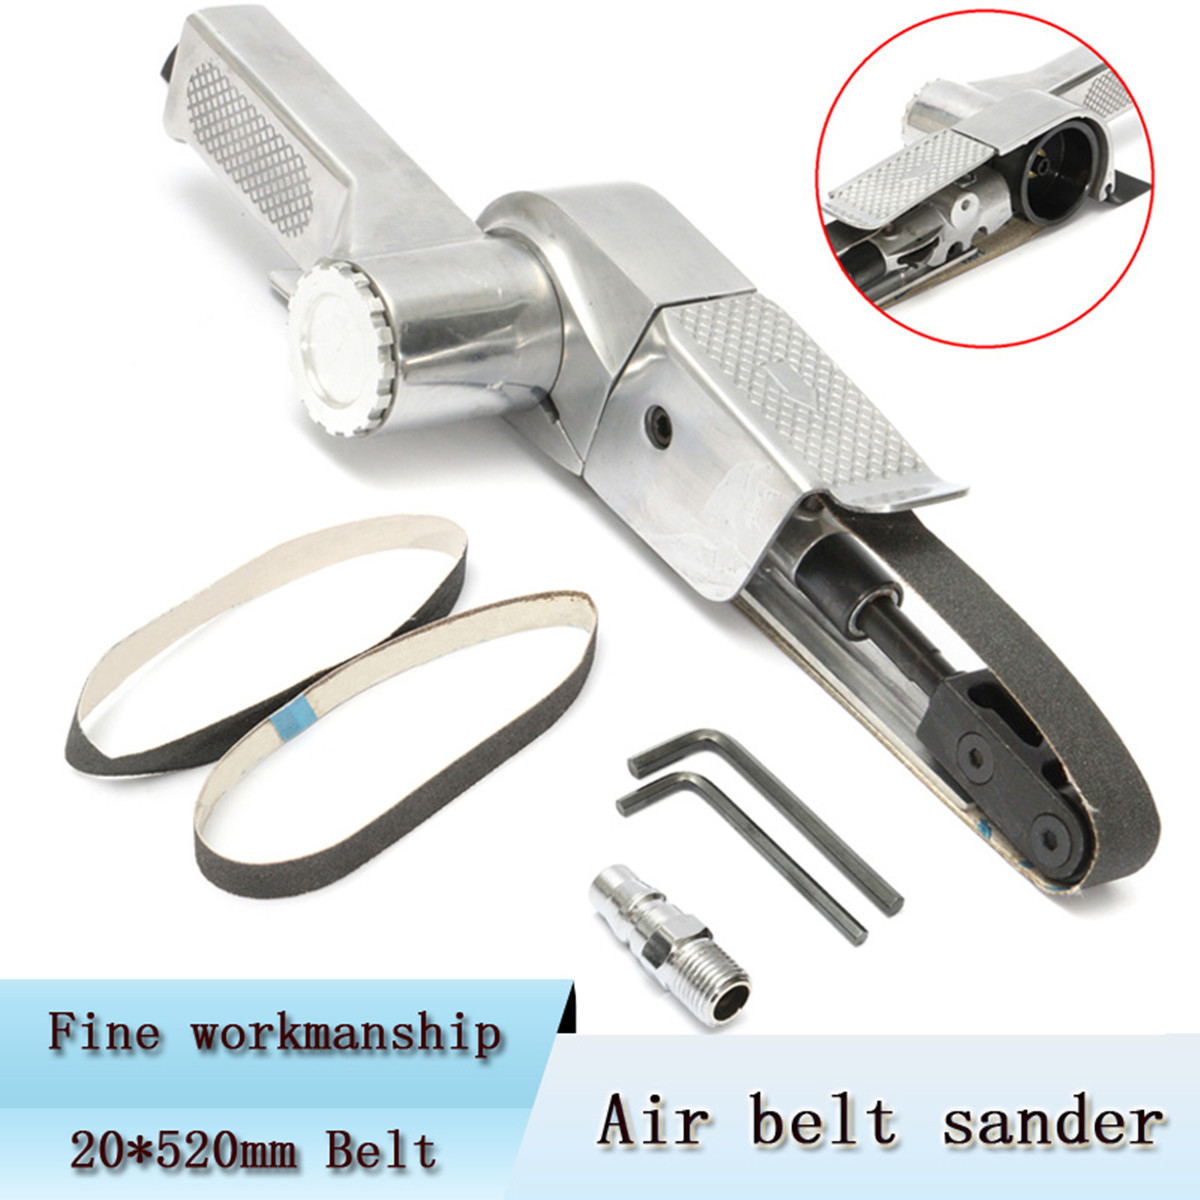 Air Belt Sander 20mm 360mm Sanding Buffing Assorted Vehicle Car Pneumatic tools Air Grinding Machine Polisher Tool Endless belt borntun air belt sander pneumatic air belt sander 60mm 260mm sanding tool air pneumatic sanding tools orbital air polisher tools